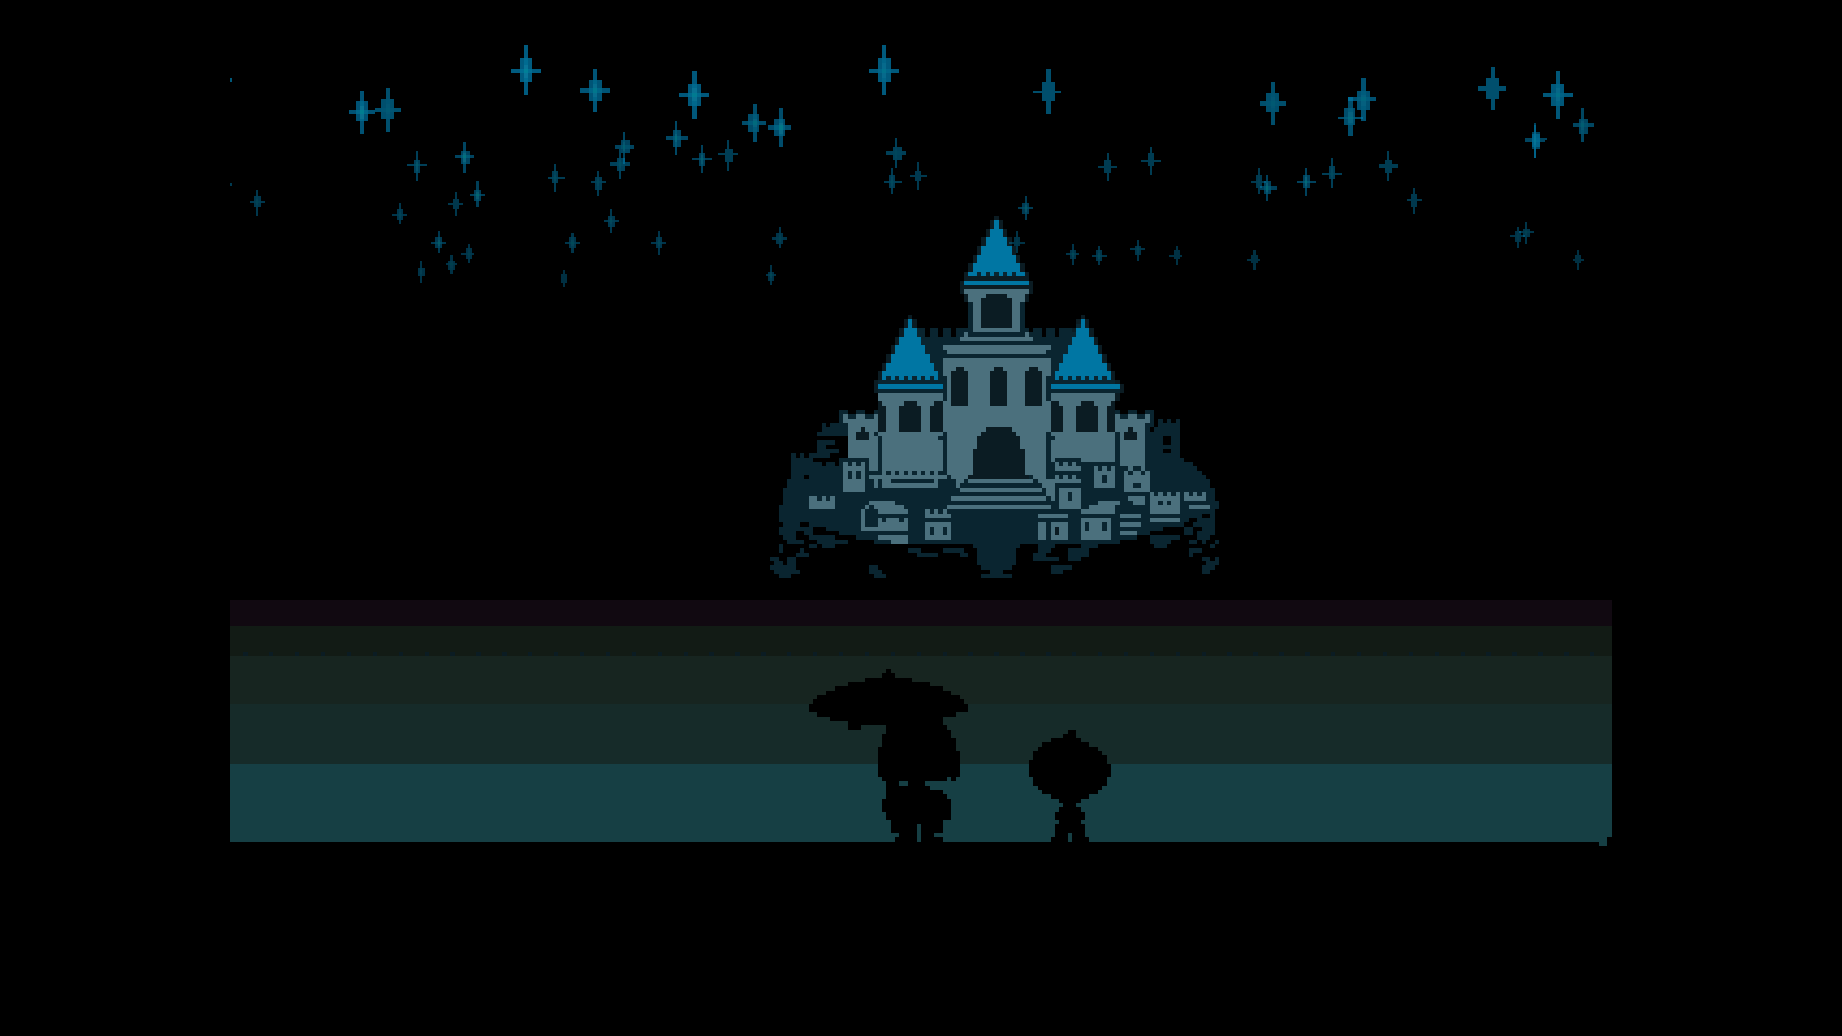 Undertale May Be Making Its Way To The Wii U Hey Poor Player